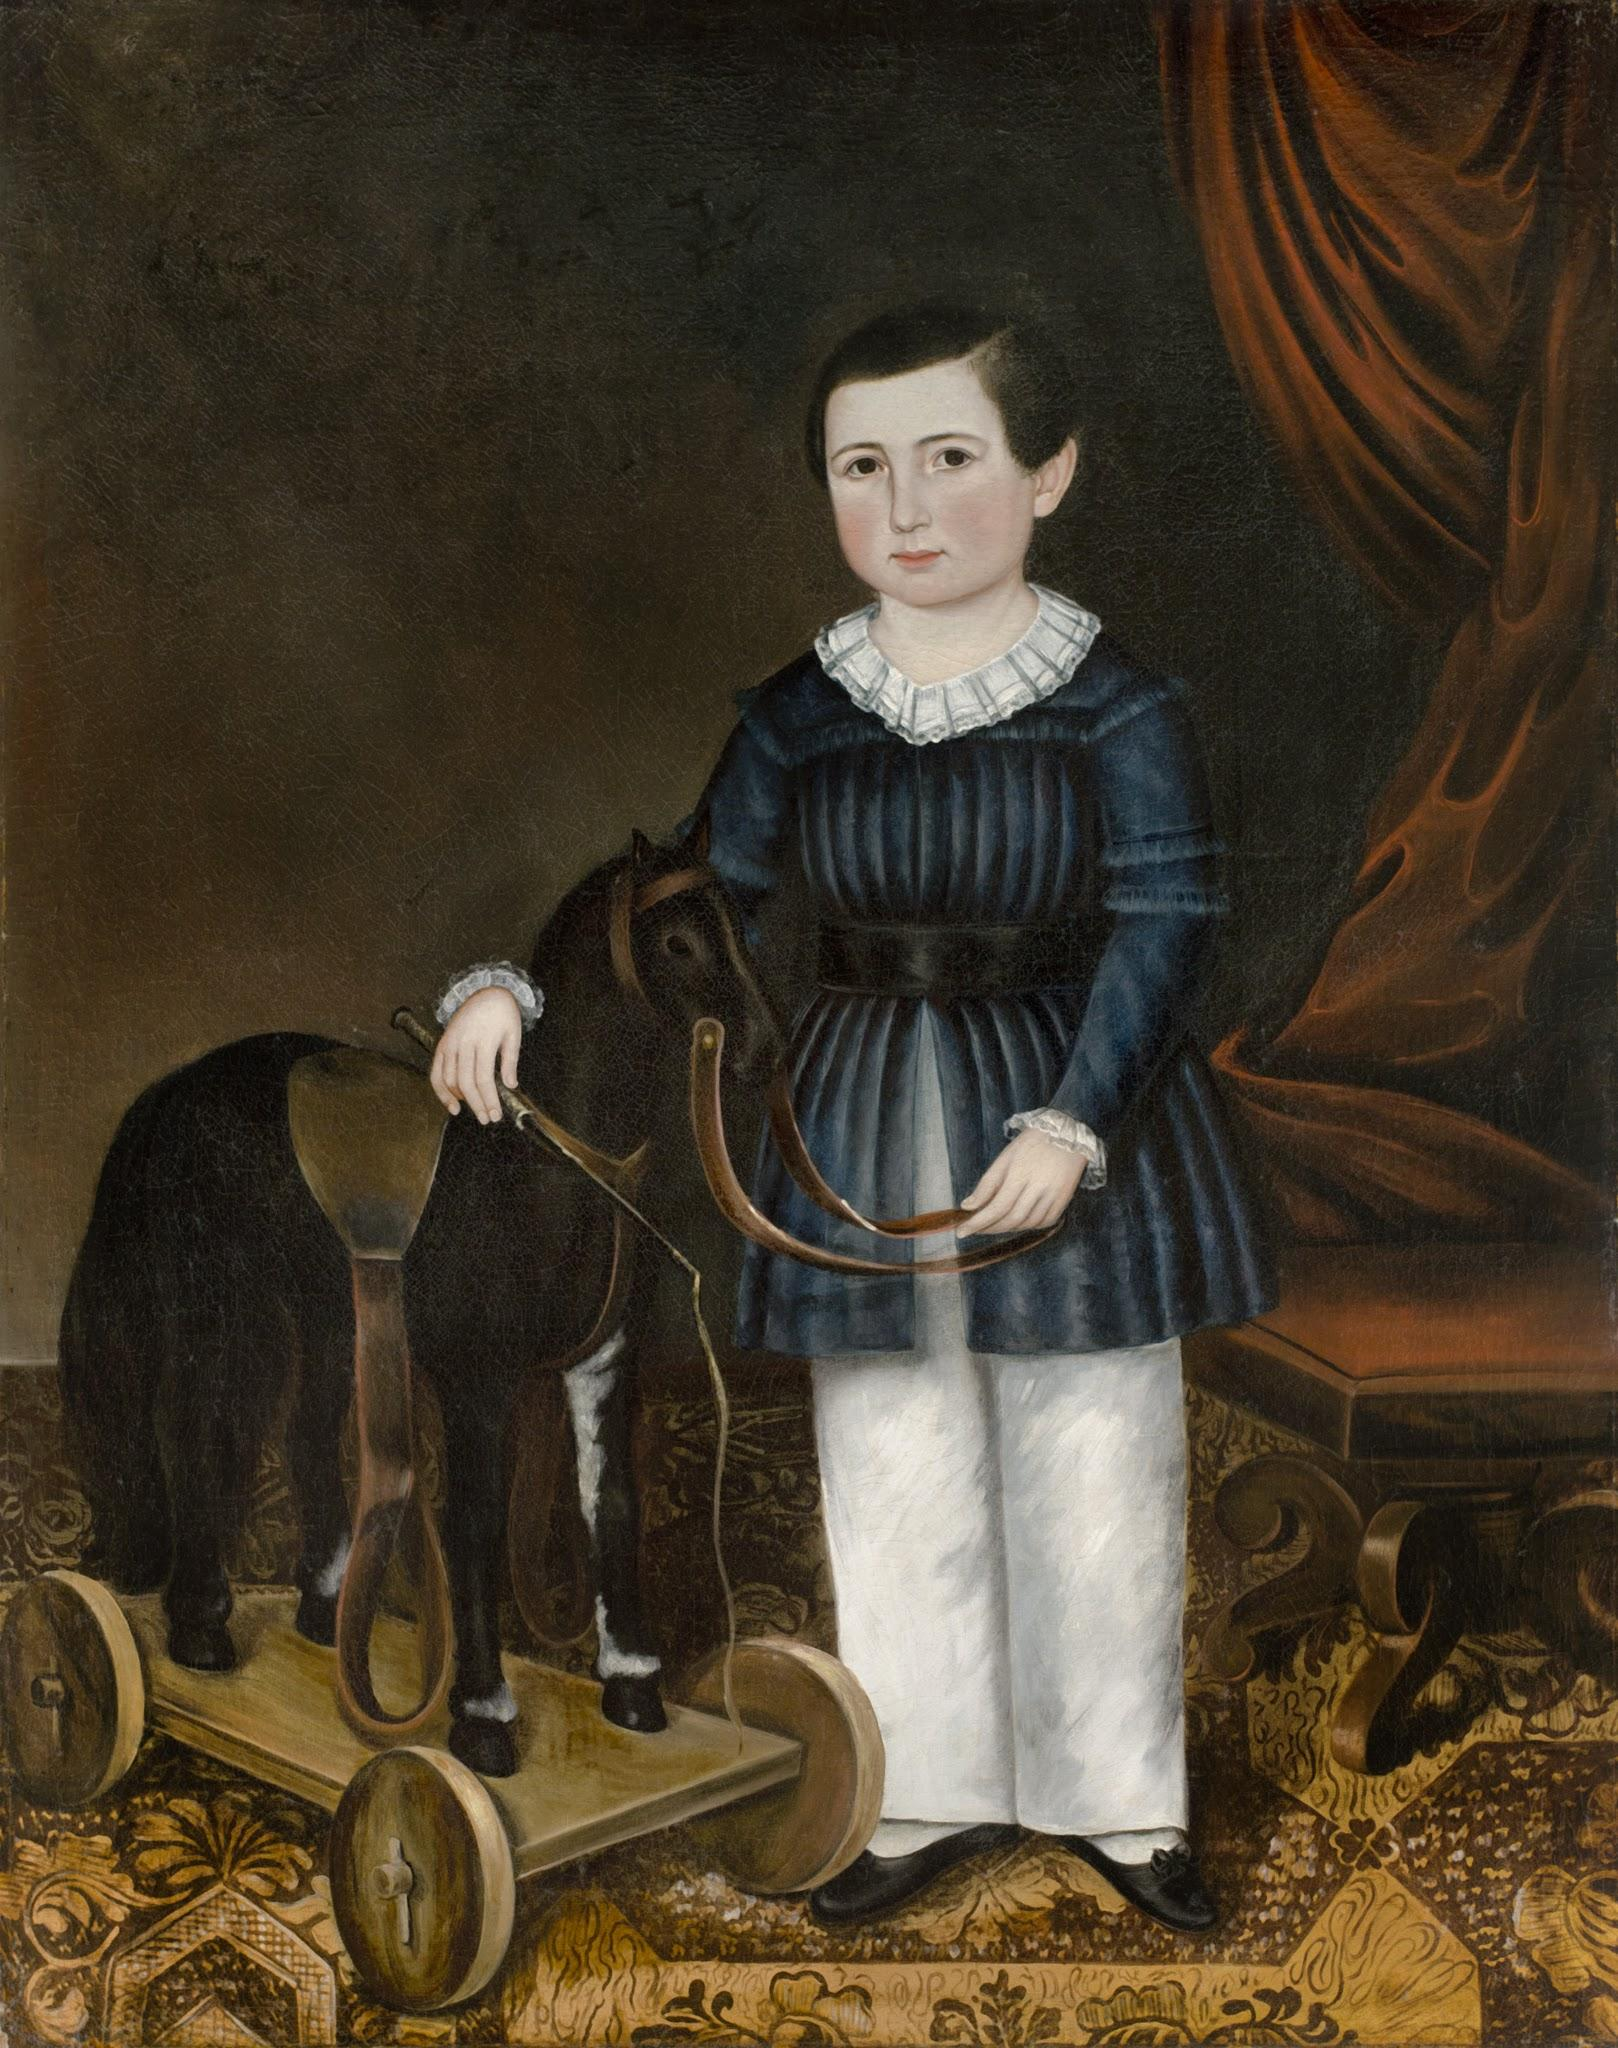 Joseph Whiting Stock, Willard T. Sears (1837-1920) with a Horse Pull Toy, 1843. Oil on canvas, purchased from Elie Nadelman, Collection of the New-York Historical Society, 1937.452